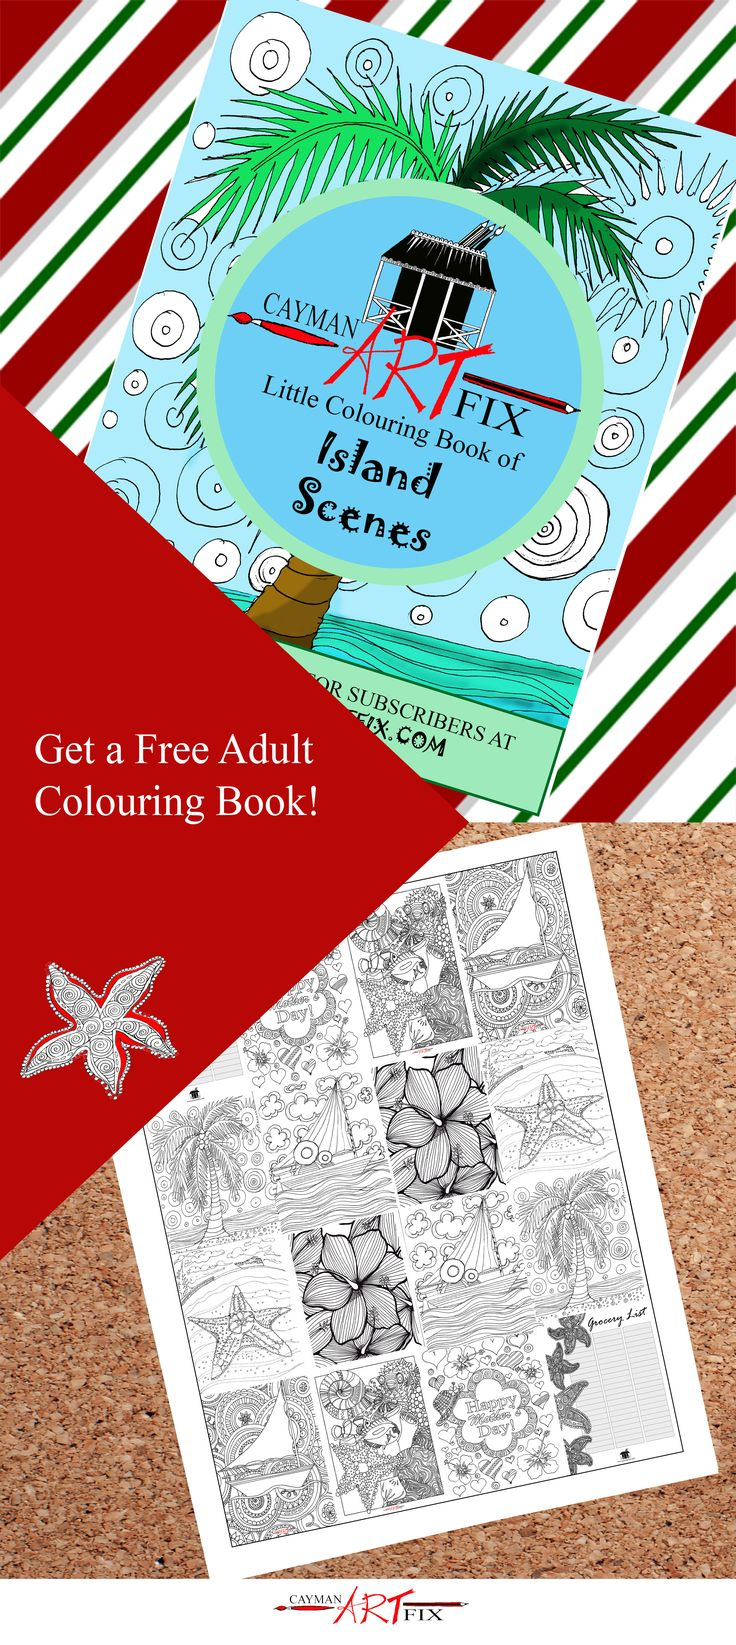 Looking for something to gift yourself without spending a dime? - Check out our Adult Colouring book that will give you a chance to sit back and relax this busy season! #Adultcolouring #adultcolouringbook #relax #takeabreatherthischristmas #colouringpages #christmas #islandart #caymanart #caymanislands #caymanartfix